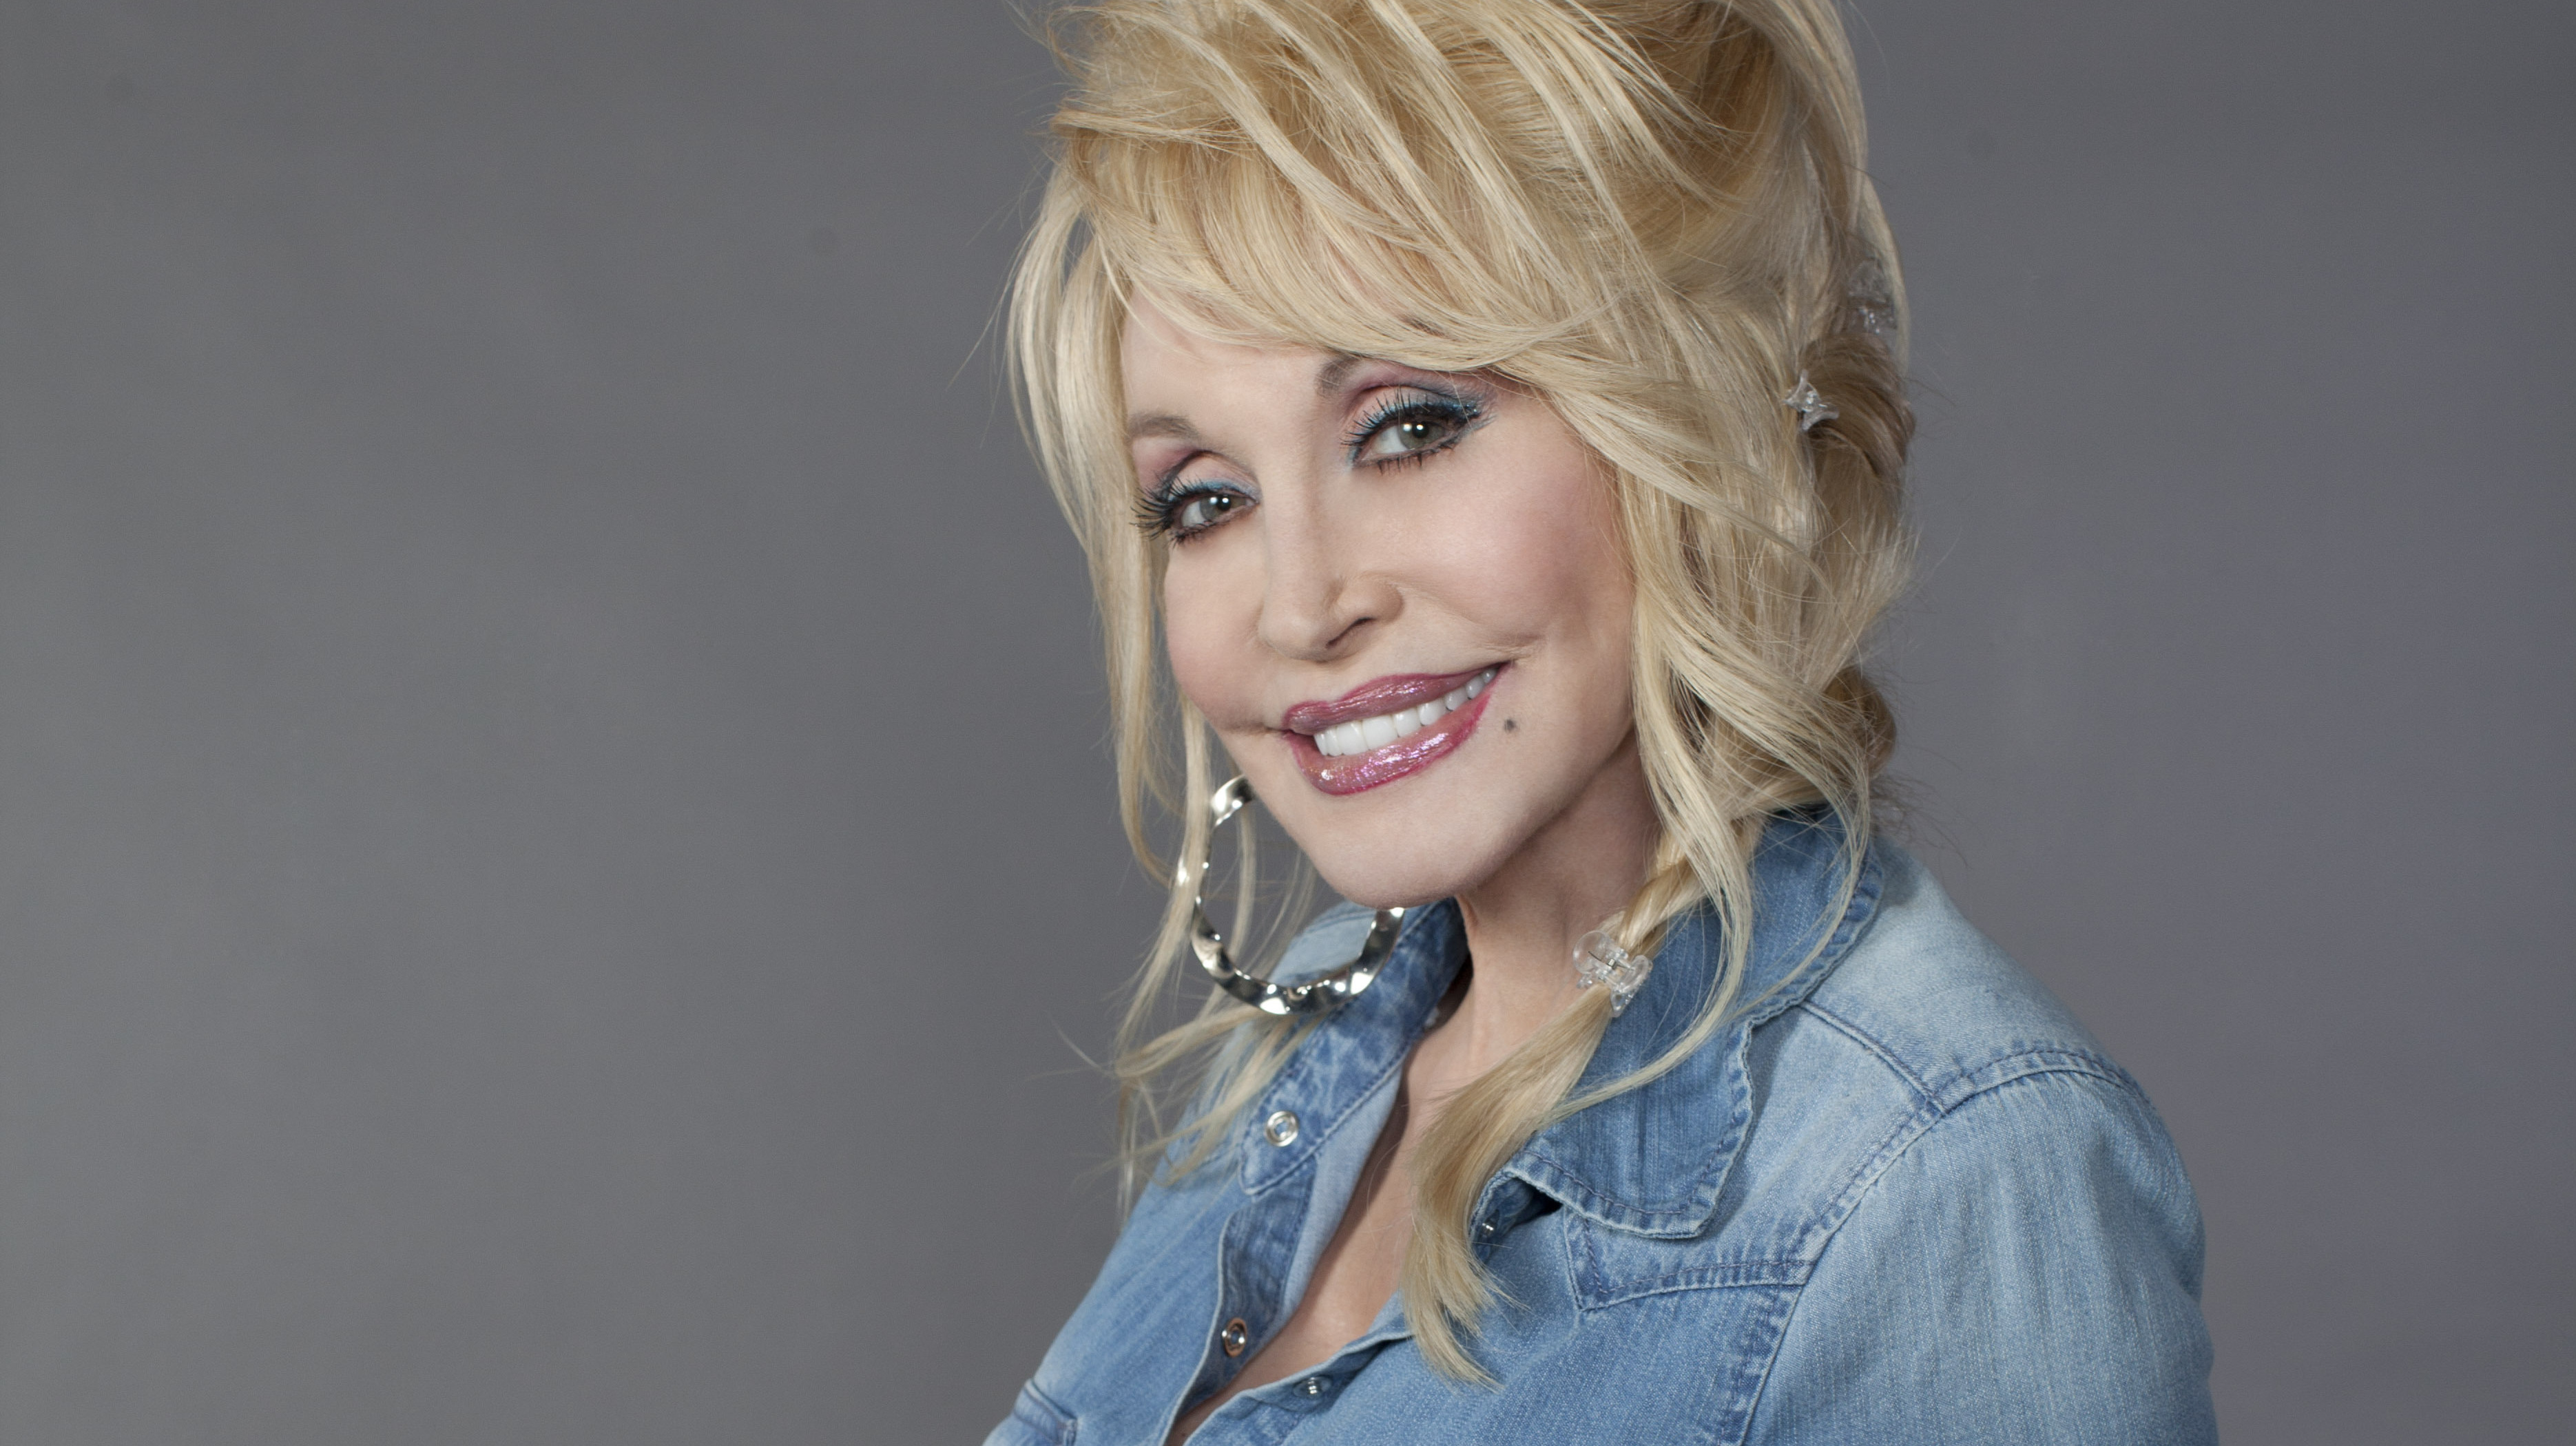 Dolly Parton: First Listen: Dolly Parton, 'Blue Smoke' : NPR